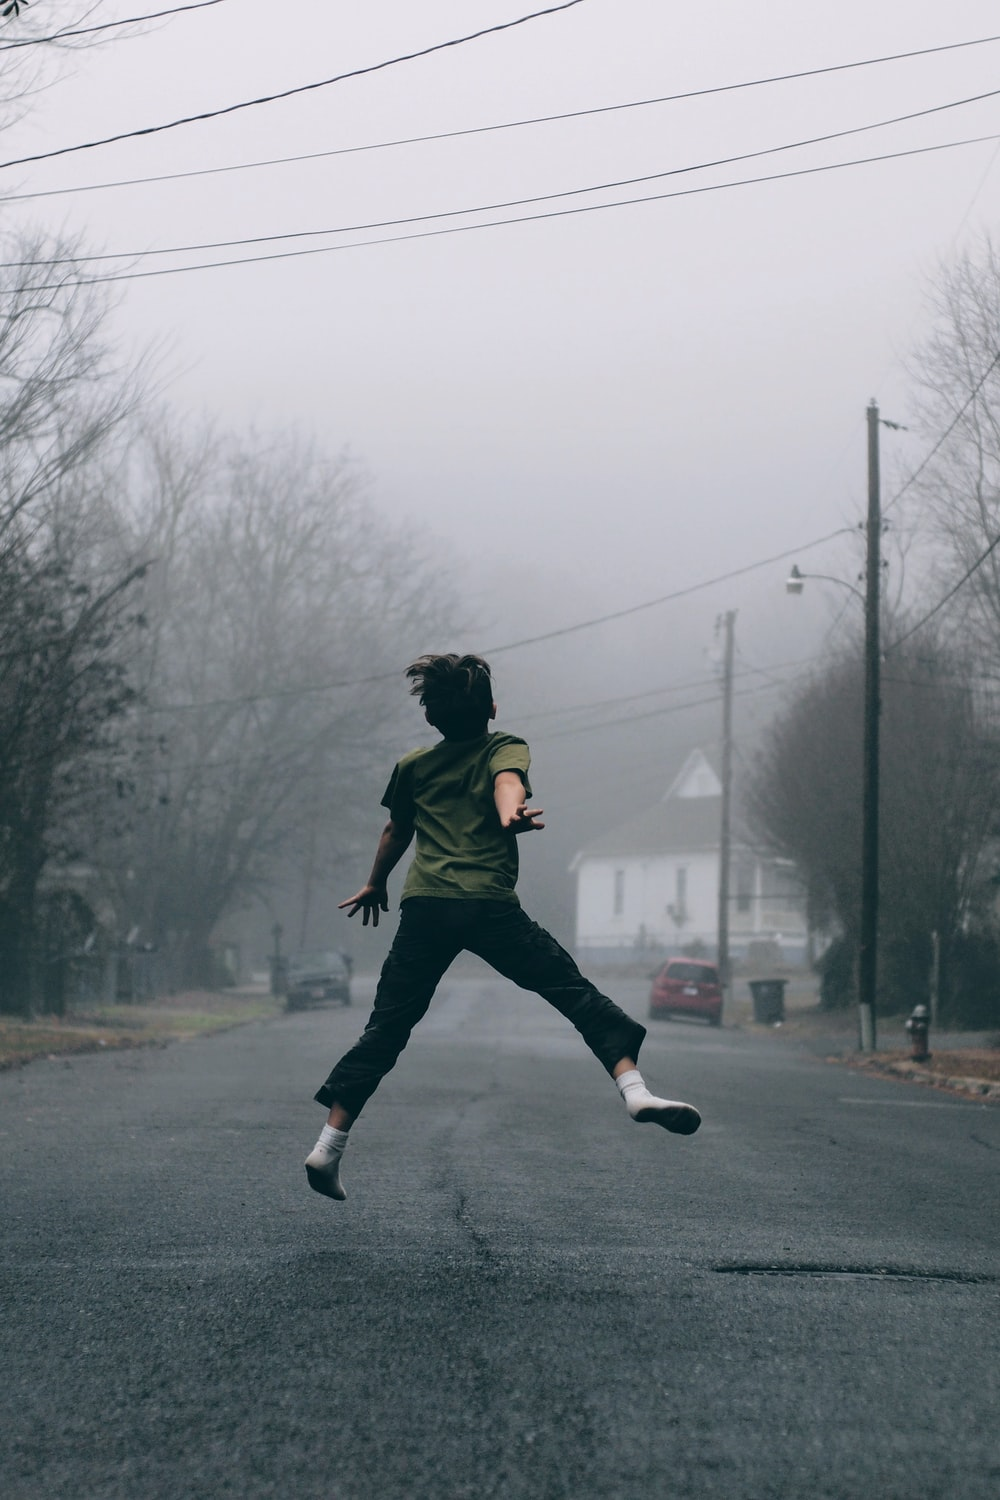 Kid jumps in the middle of the road on a foggy day